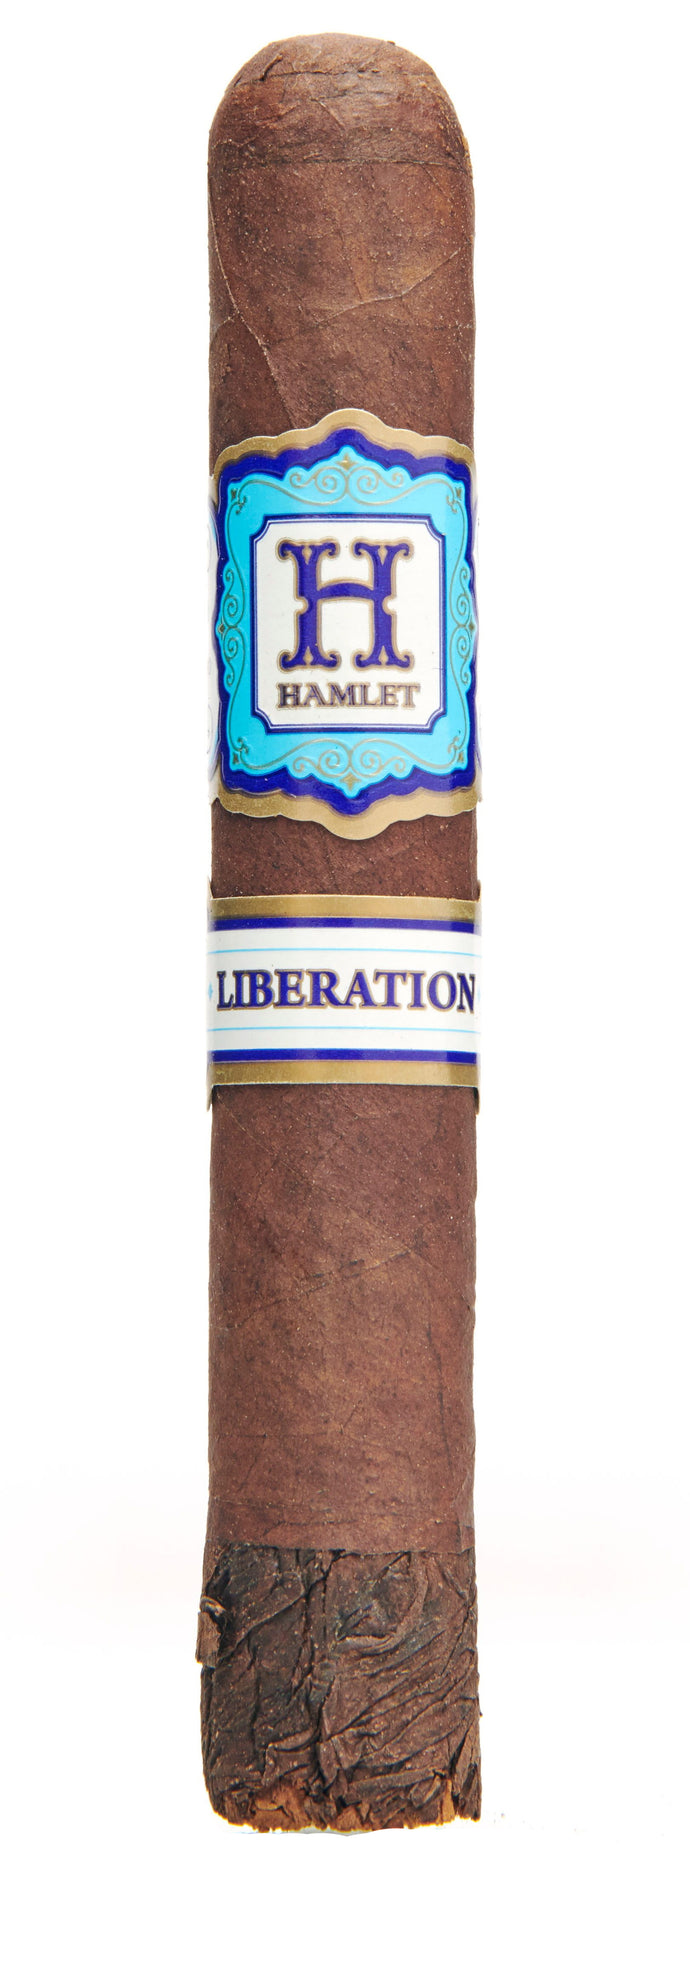 Liberation by Hamlet Robusto